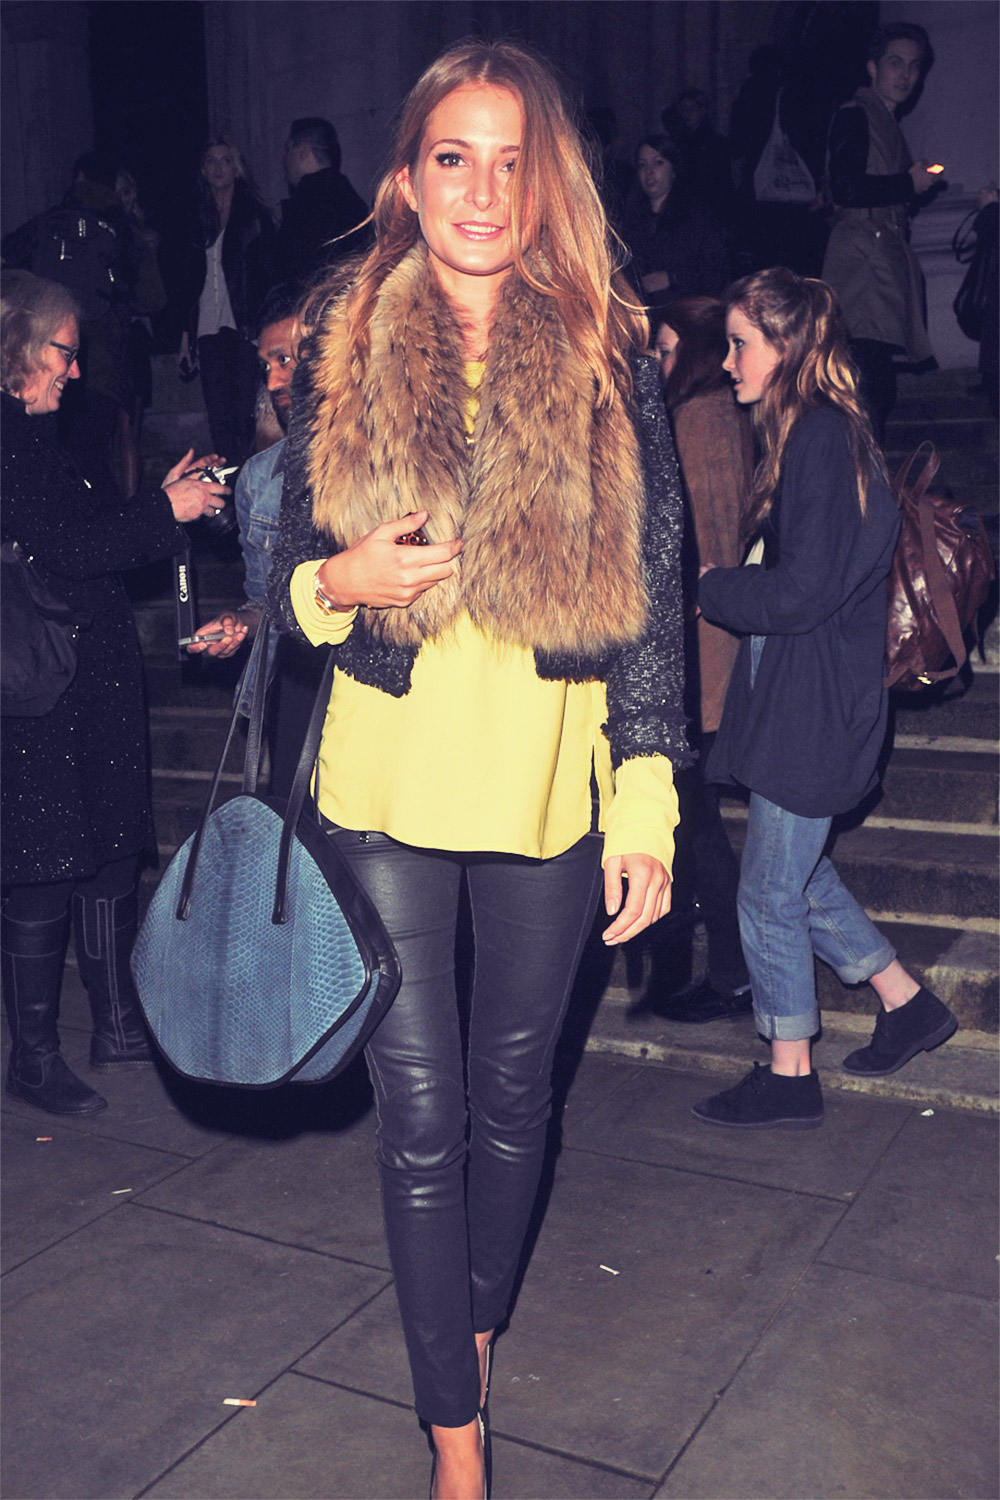 Millie Mackintosh attends London Fashion Week